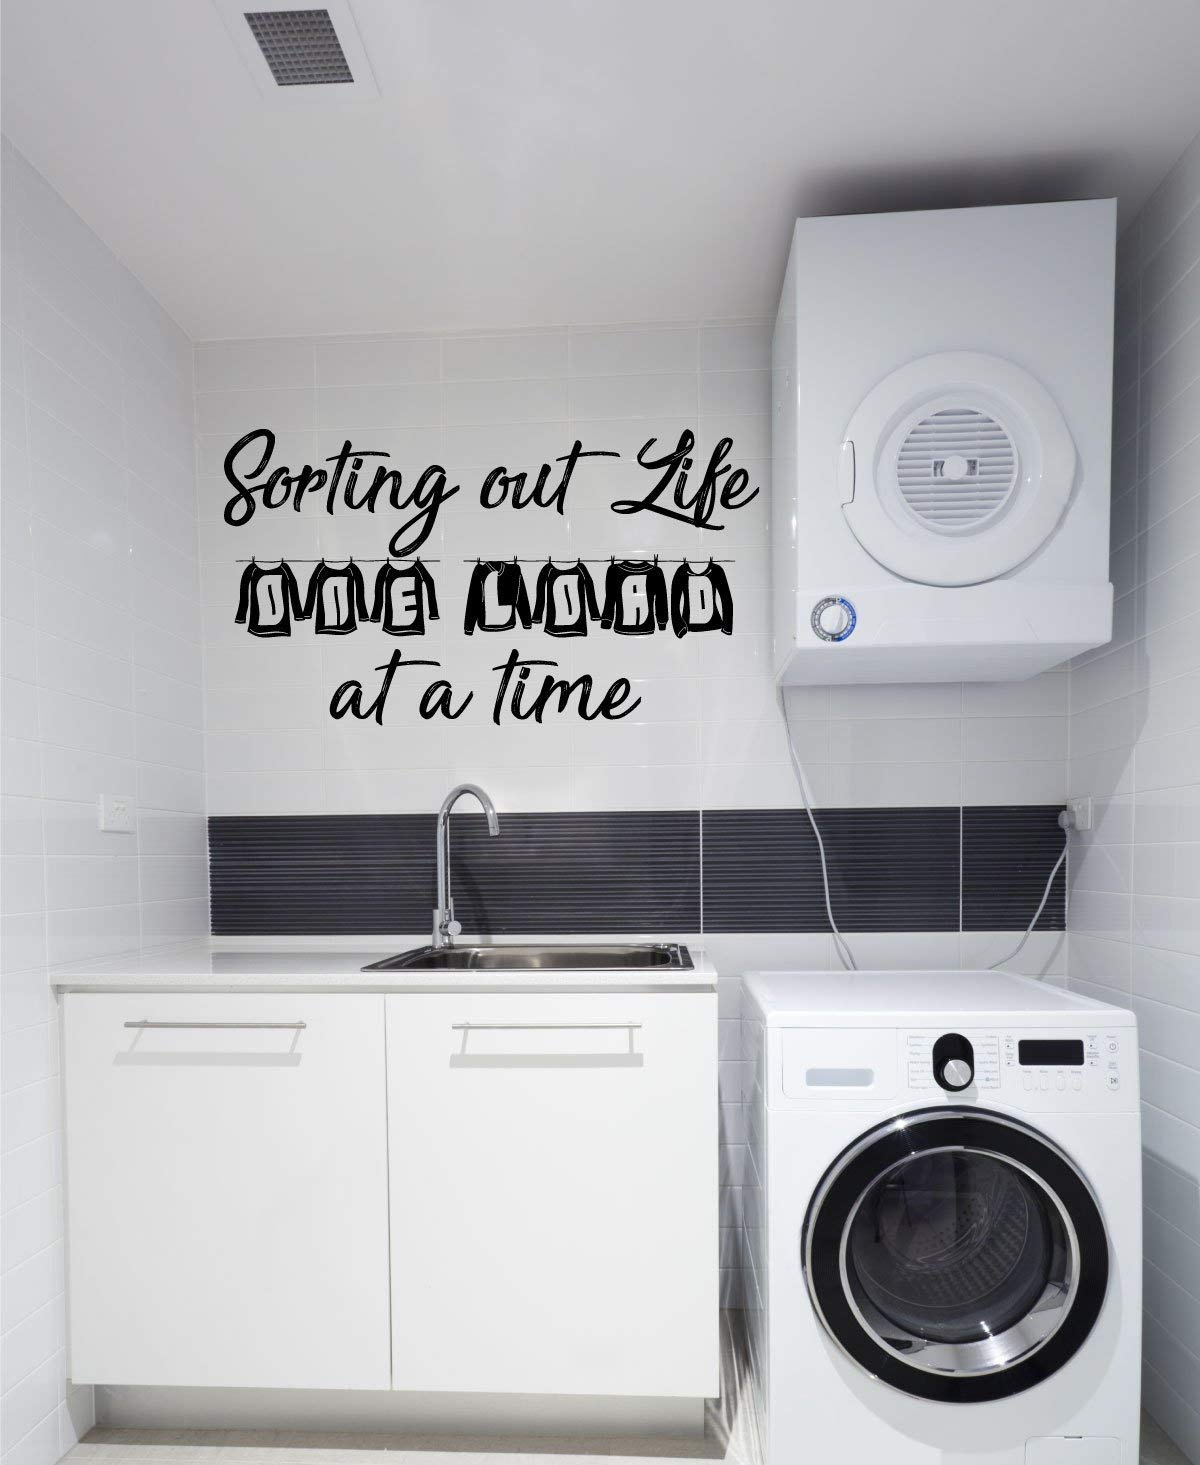 Laundry Room Decor   Vinyl Wall Decal Lettering   Sorting Out Life One Load  At a Time Quote   Large, Small Sizes   Black, Brown, Red, Blue, Green, ...